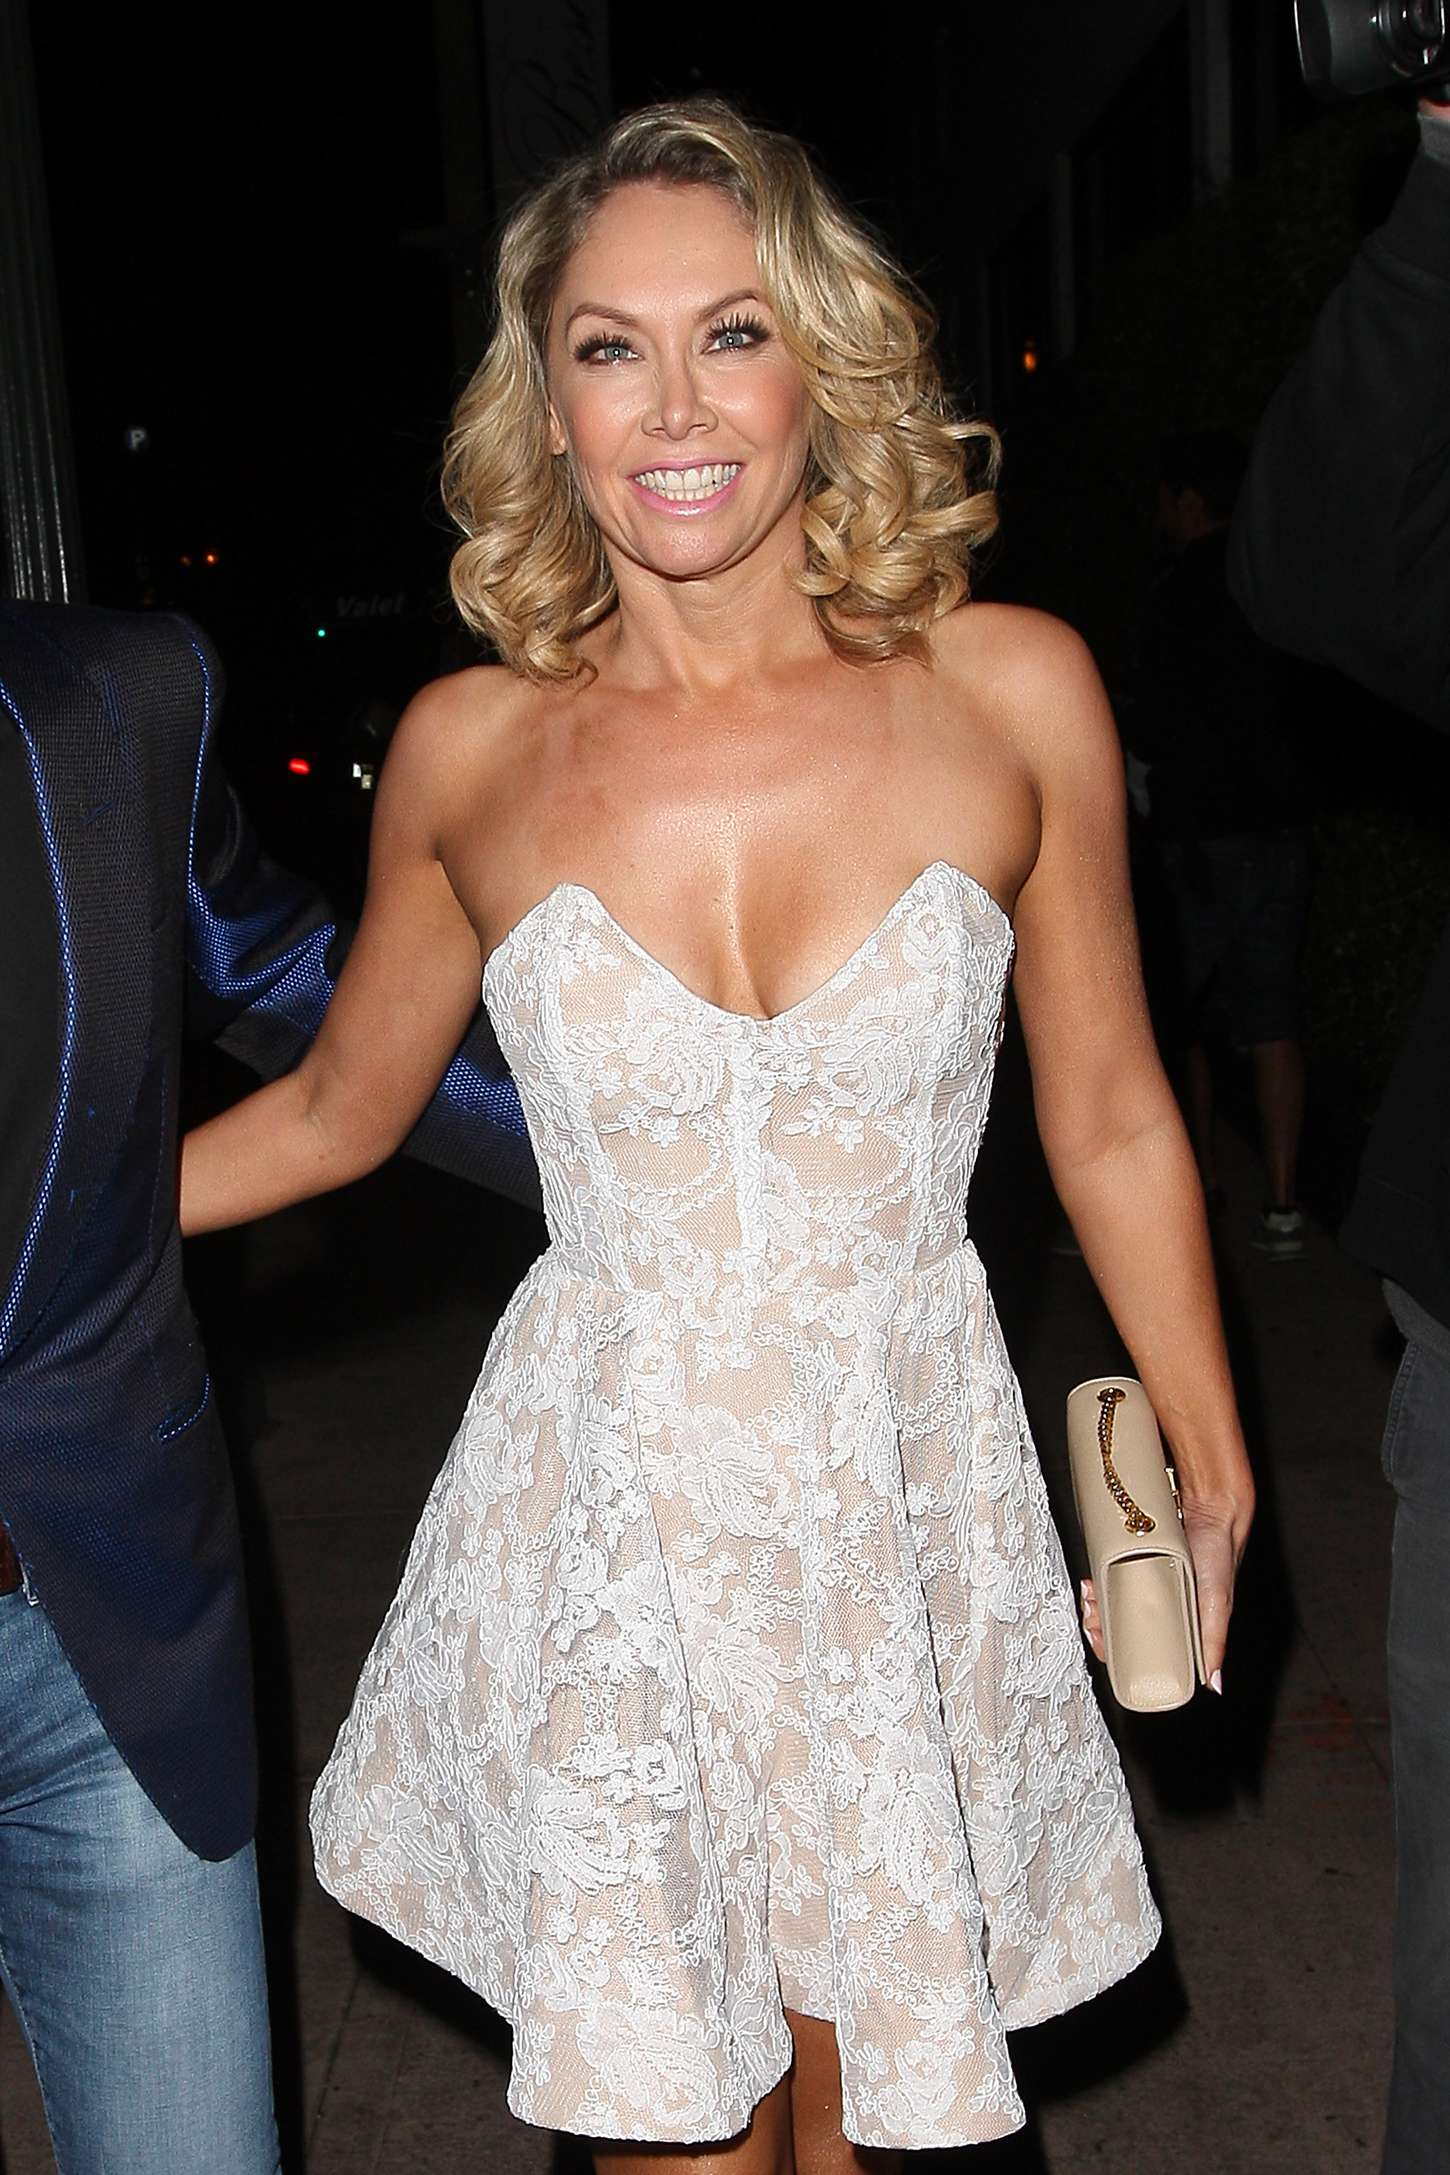 Kym Johnson Dancing With The Stars Married: 'Dancing With The Stars' Finale After Party